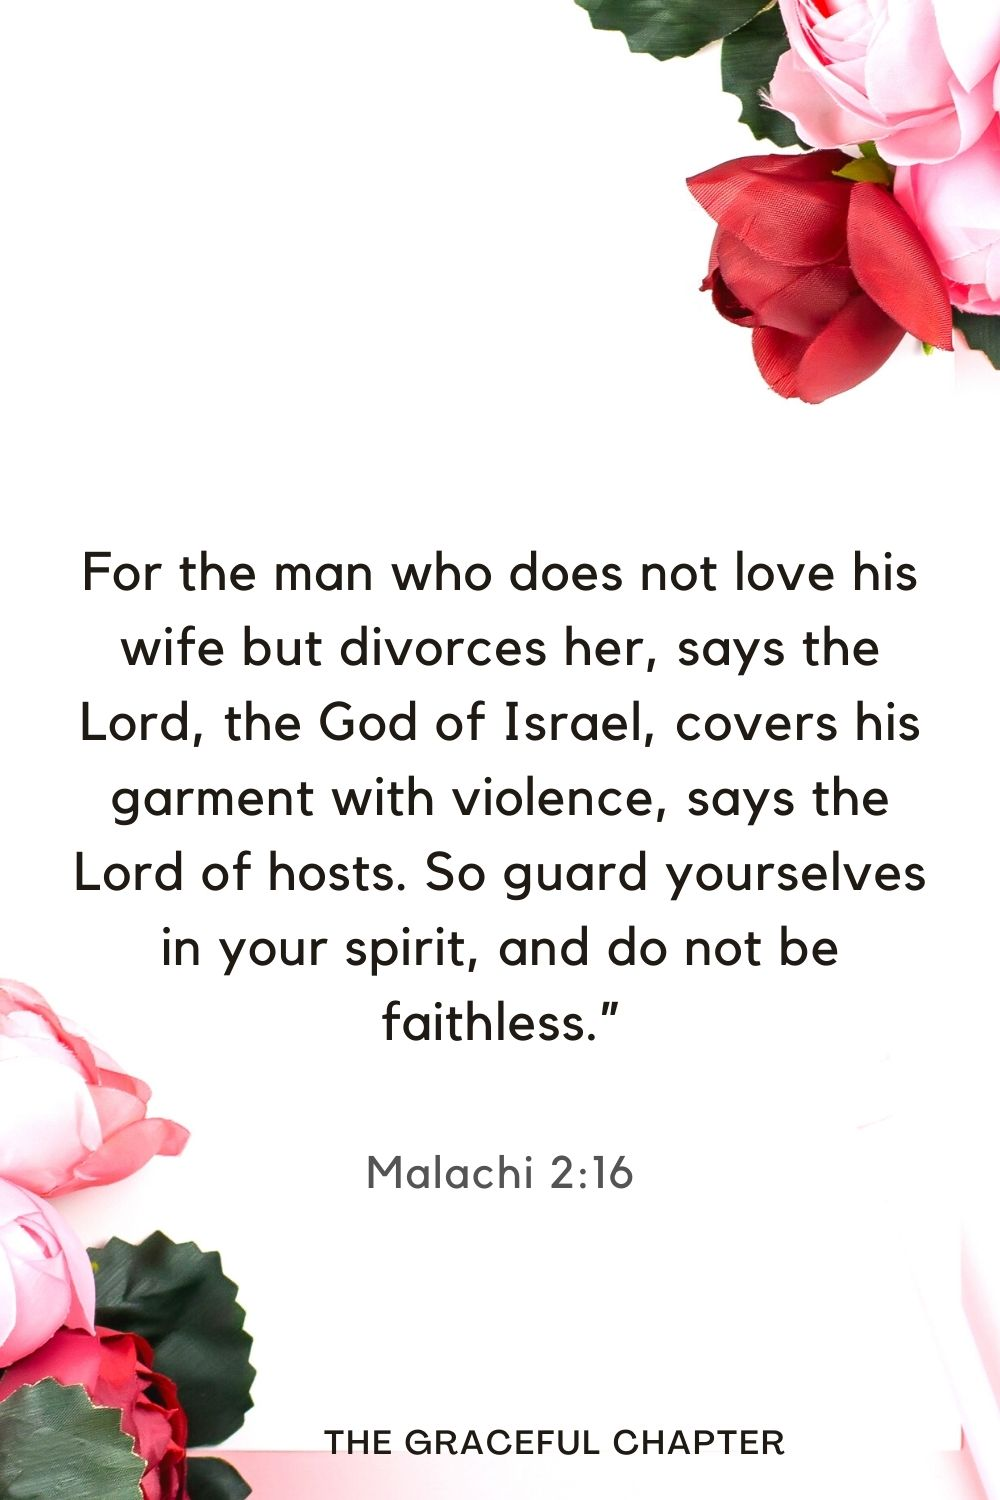 """For the man who does not love his wife but divorces her, says the Lord, the God of Israel, covers his garment with violence, says the Lord of hosts. So guard yourselves in your spirit, and do not be faithless."""" Malachi 2:16"""